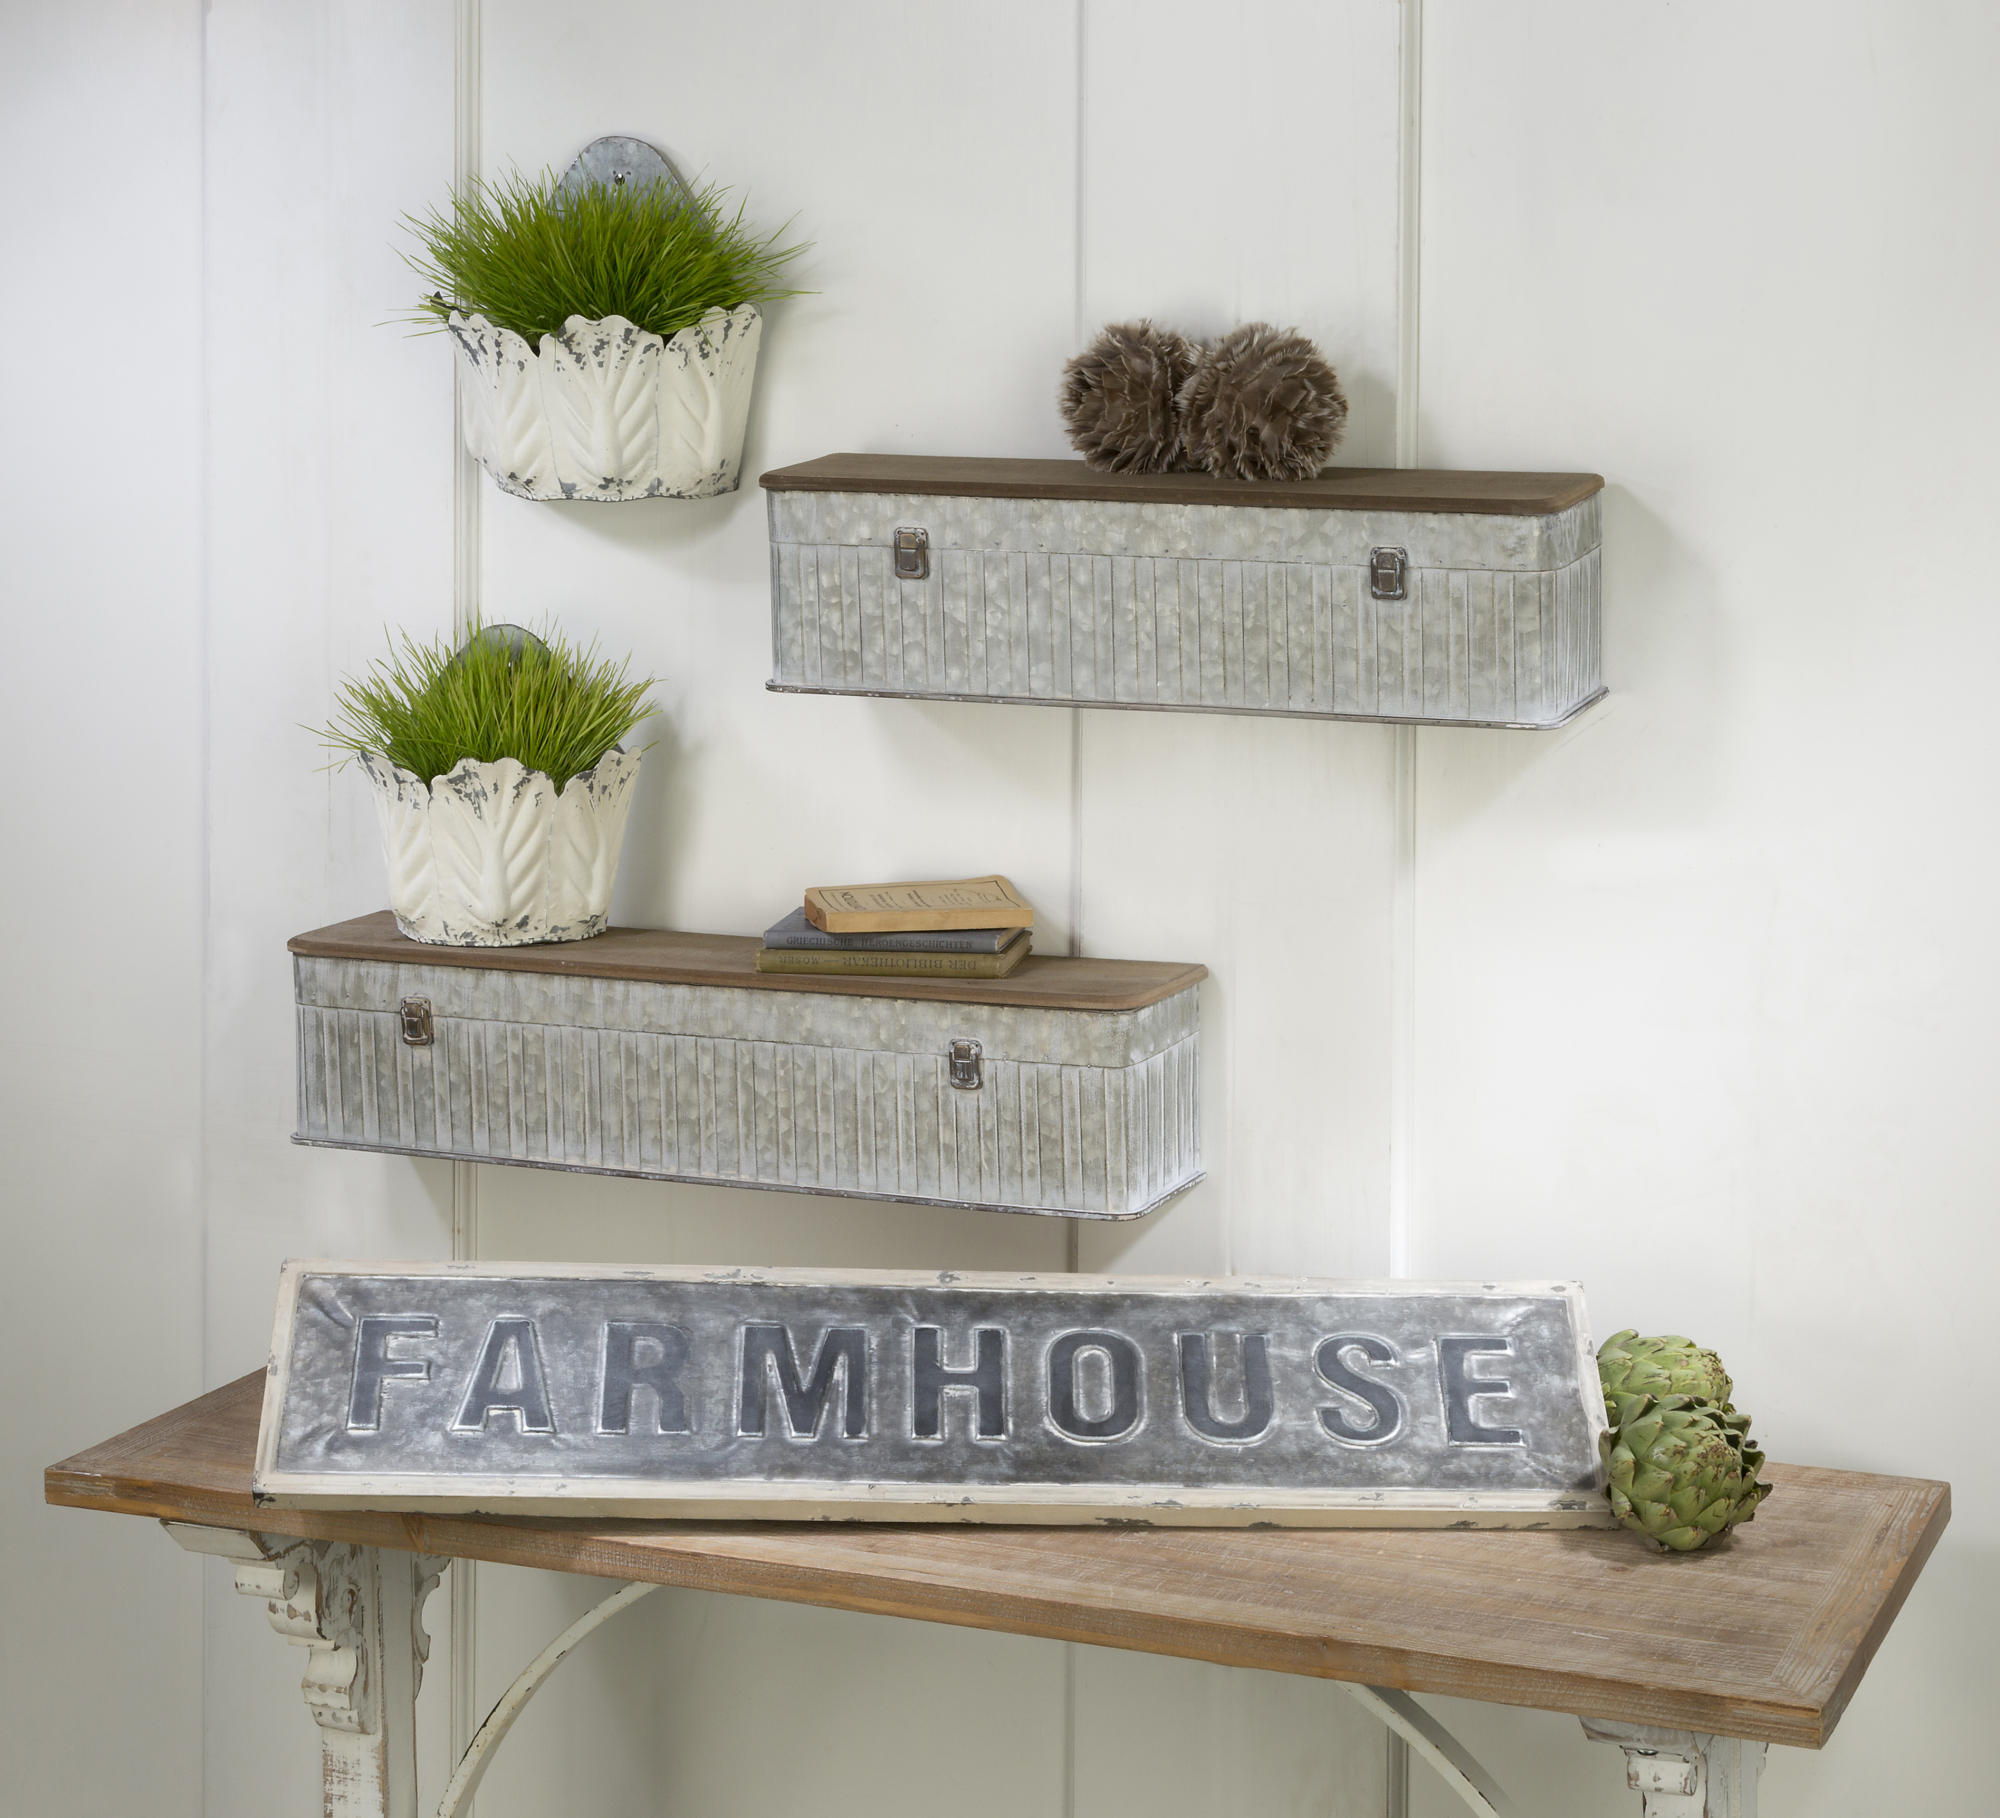 Farmhouse wall decor tripar international inc for Decor international inc